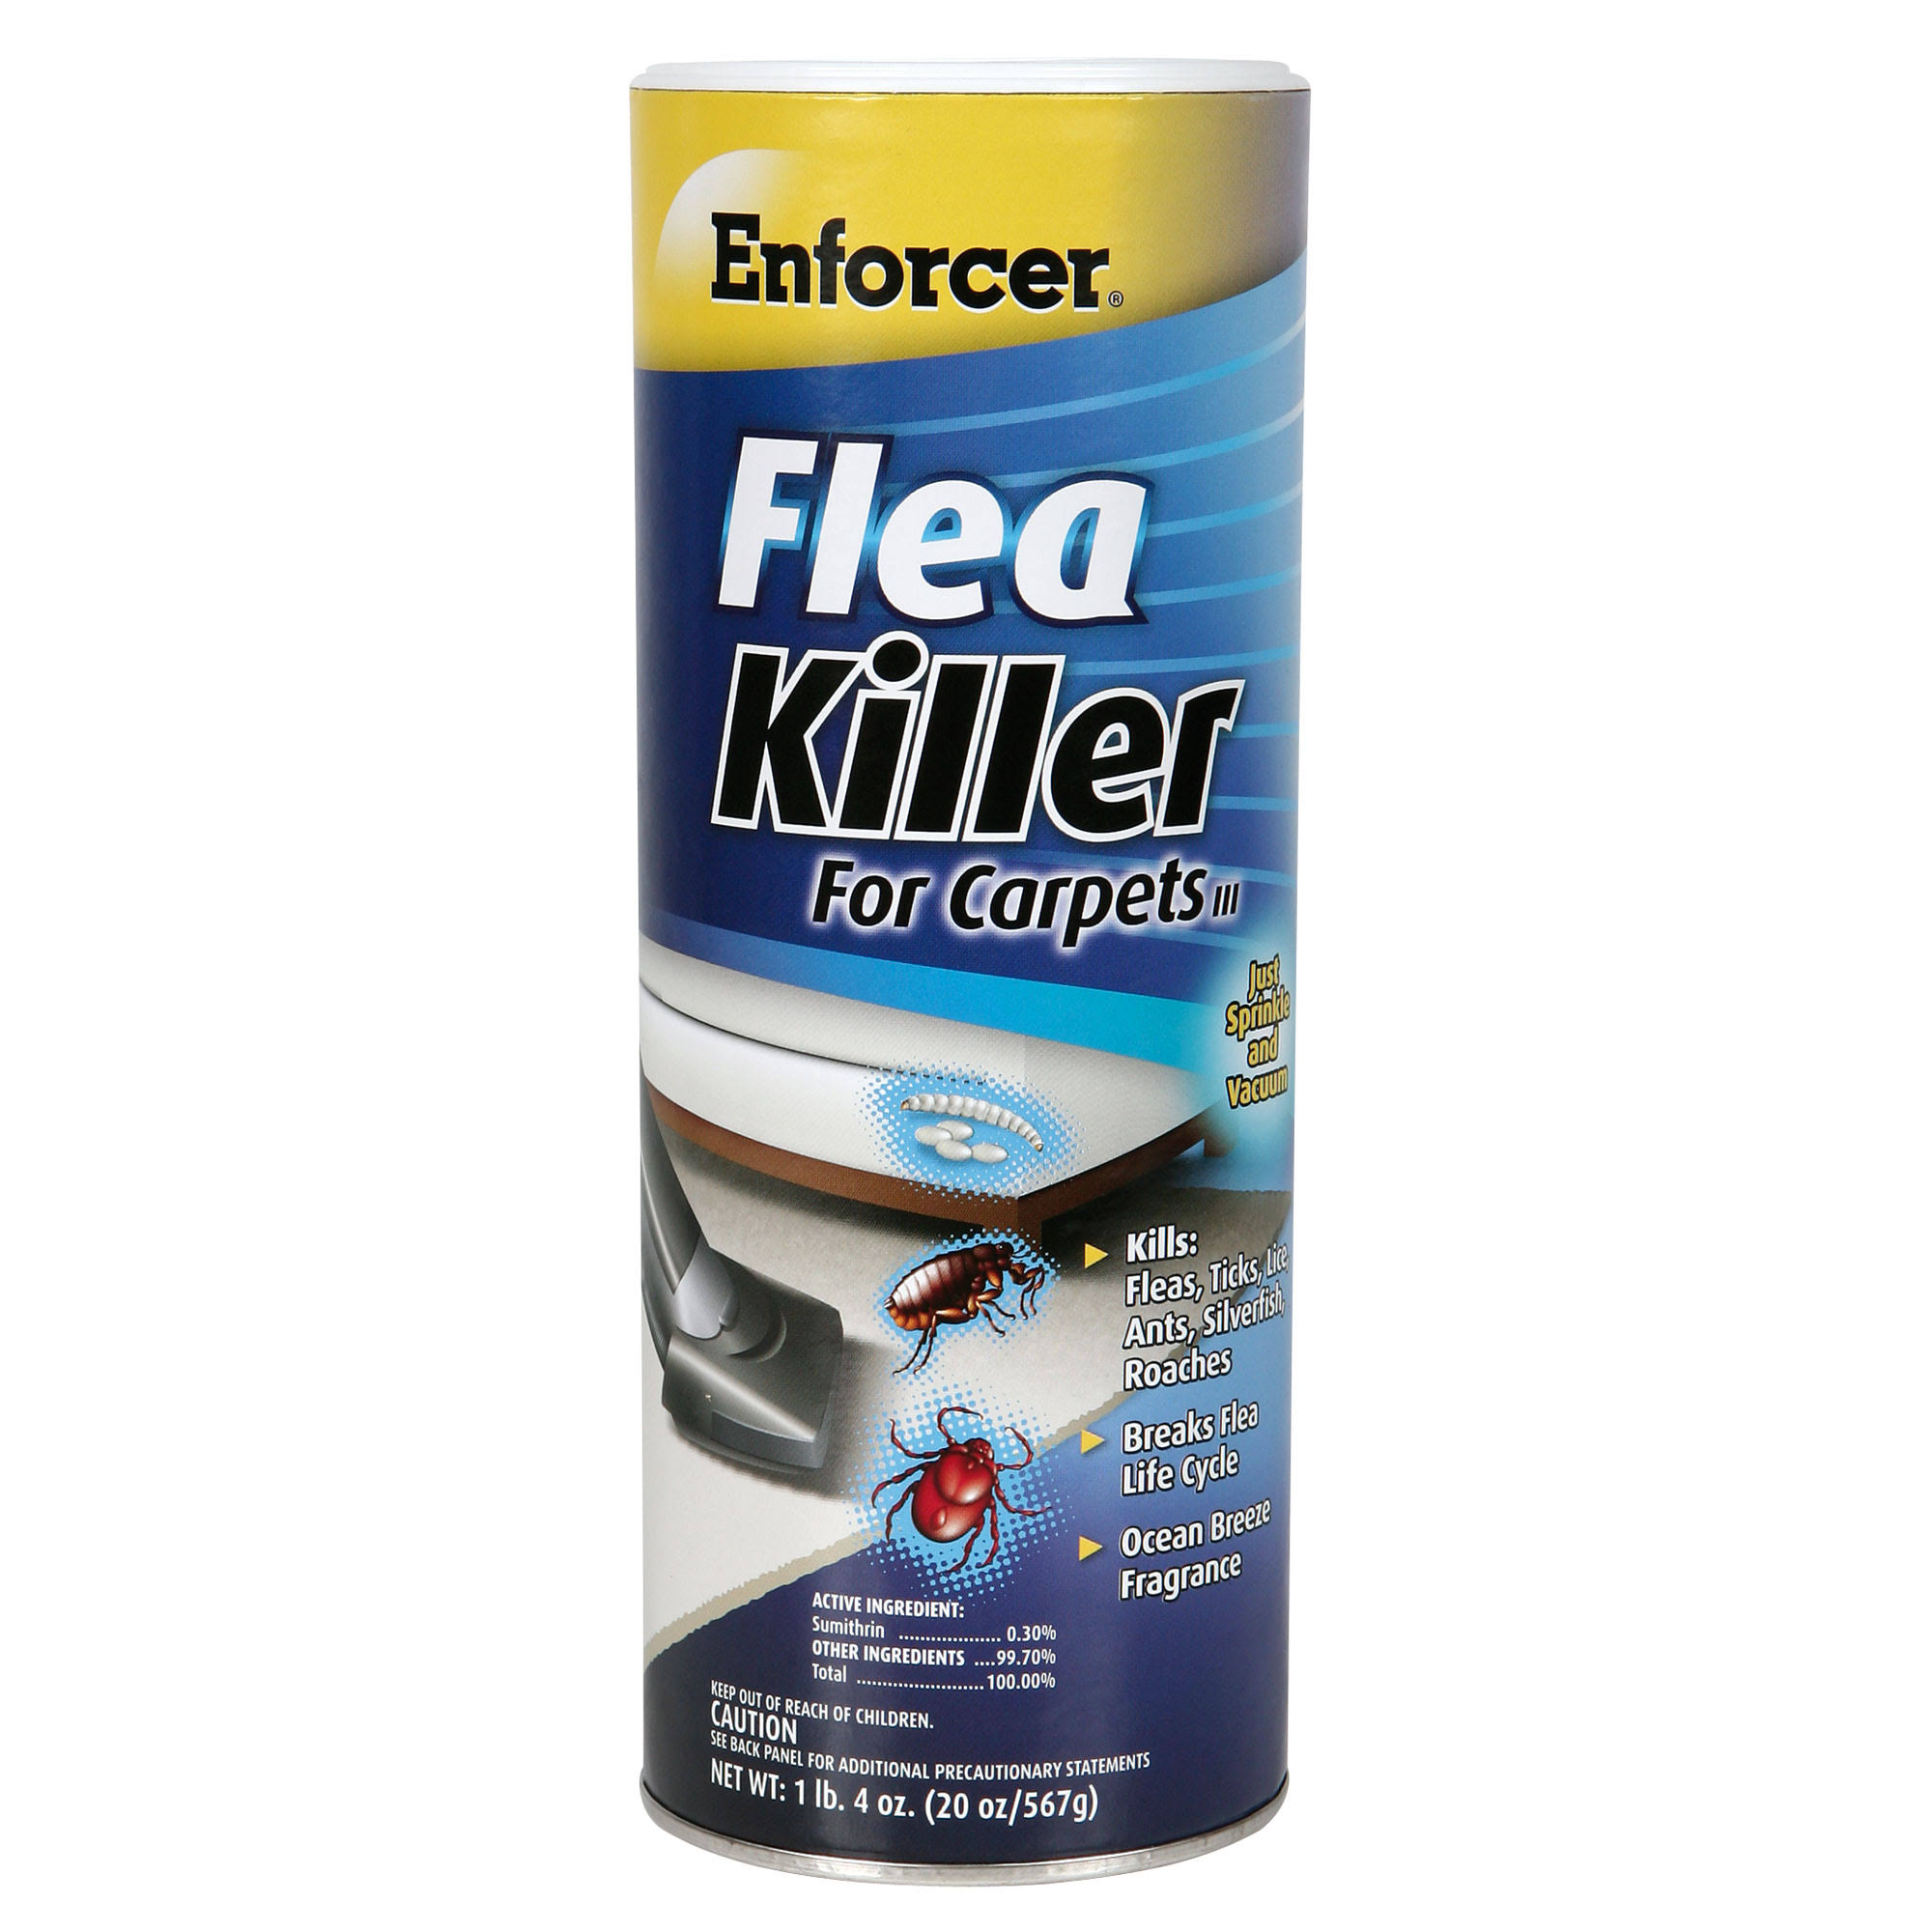 Enforcer 20-Ounce Carpet Flea Killer - Ocean Breeze, 20oz